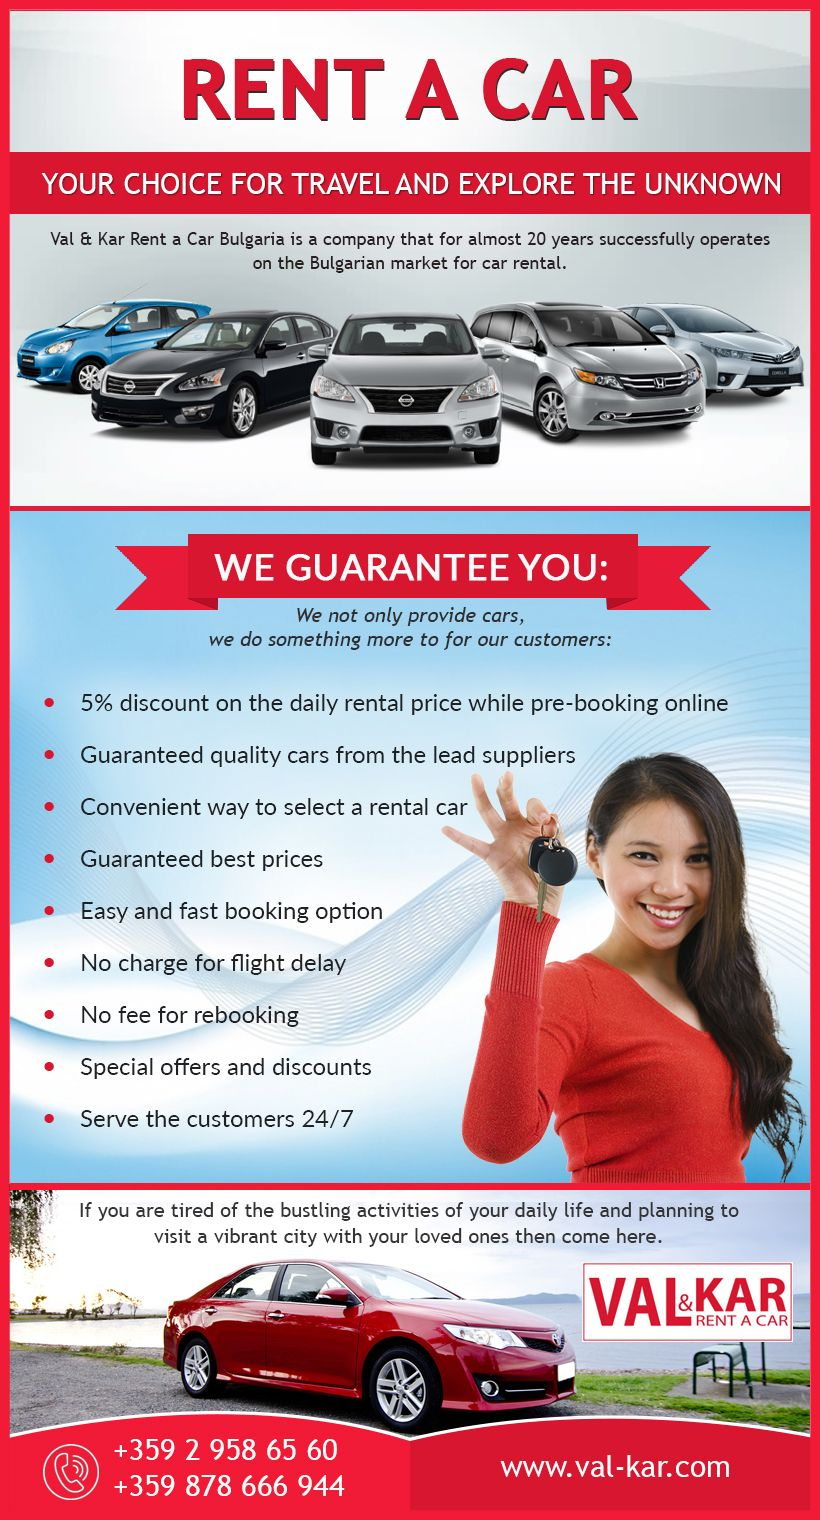 Rent a car 20 years old near me